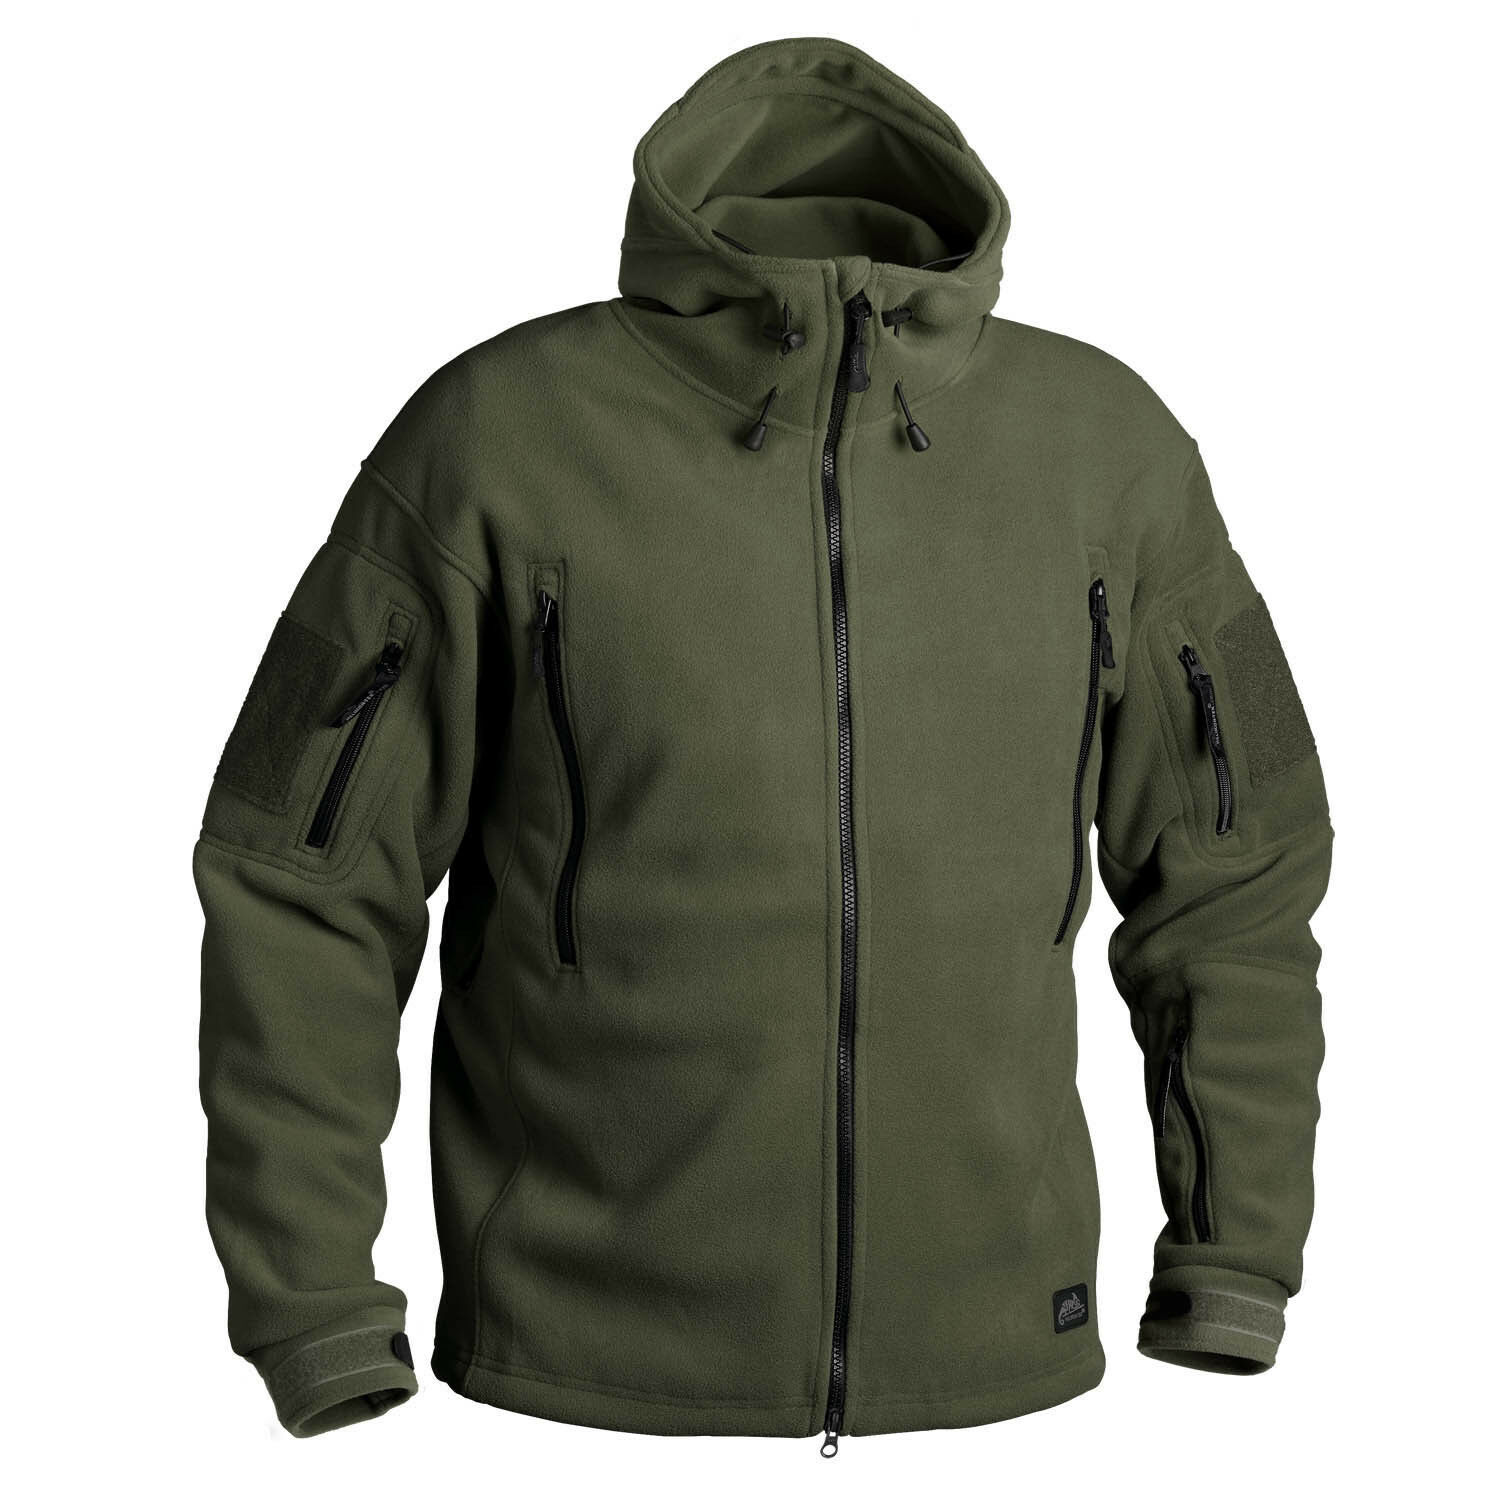 HelikonTEX PATRIOT HEAVY FLEECE all'aperto Con Cappuccio Giacca Jacket verde Oliva, SSmtutti